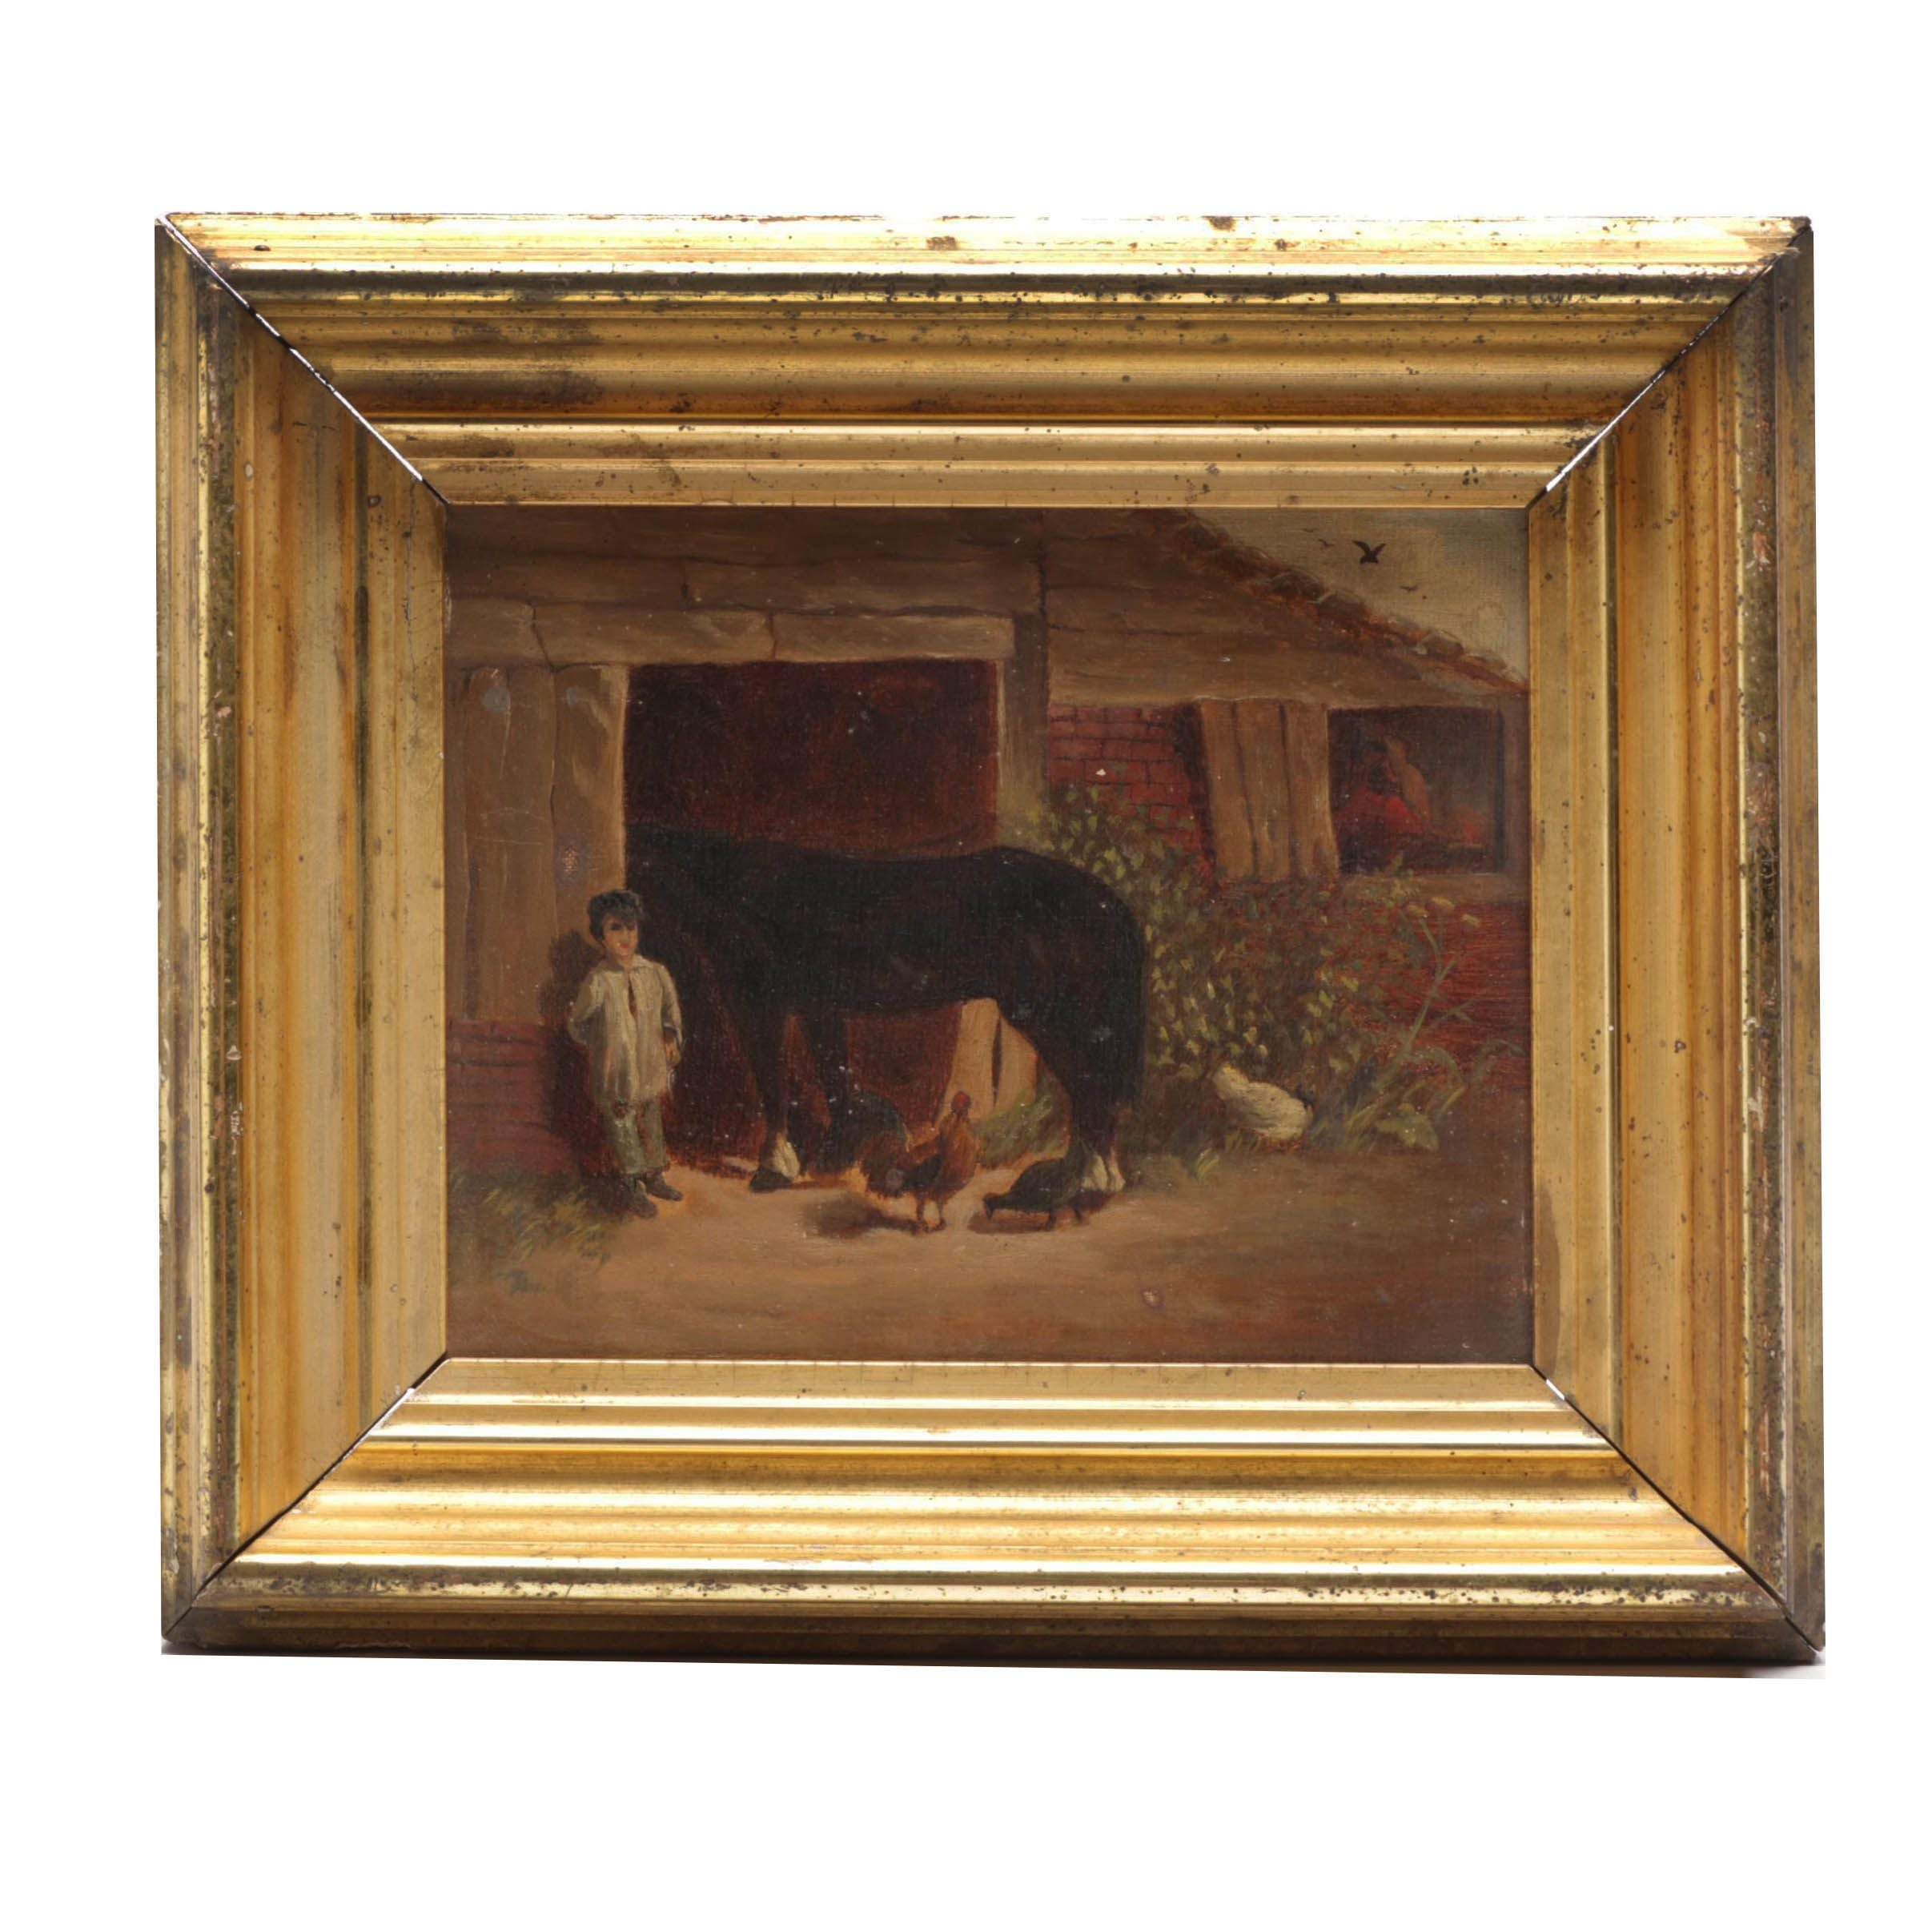 Late 19th-Century Farm Genre Oil Painting